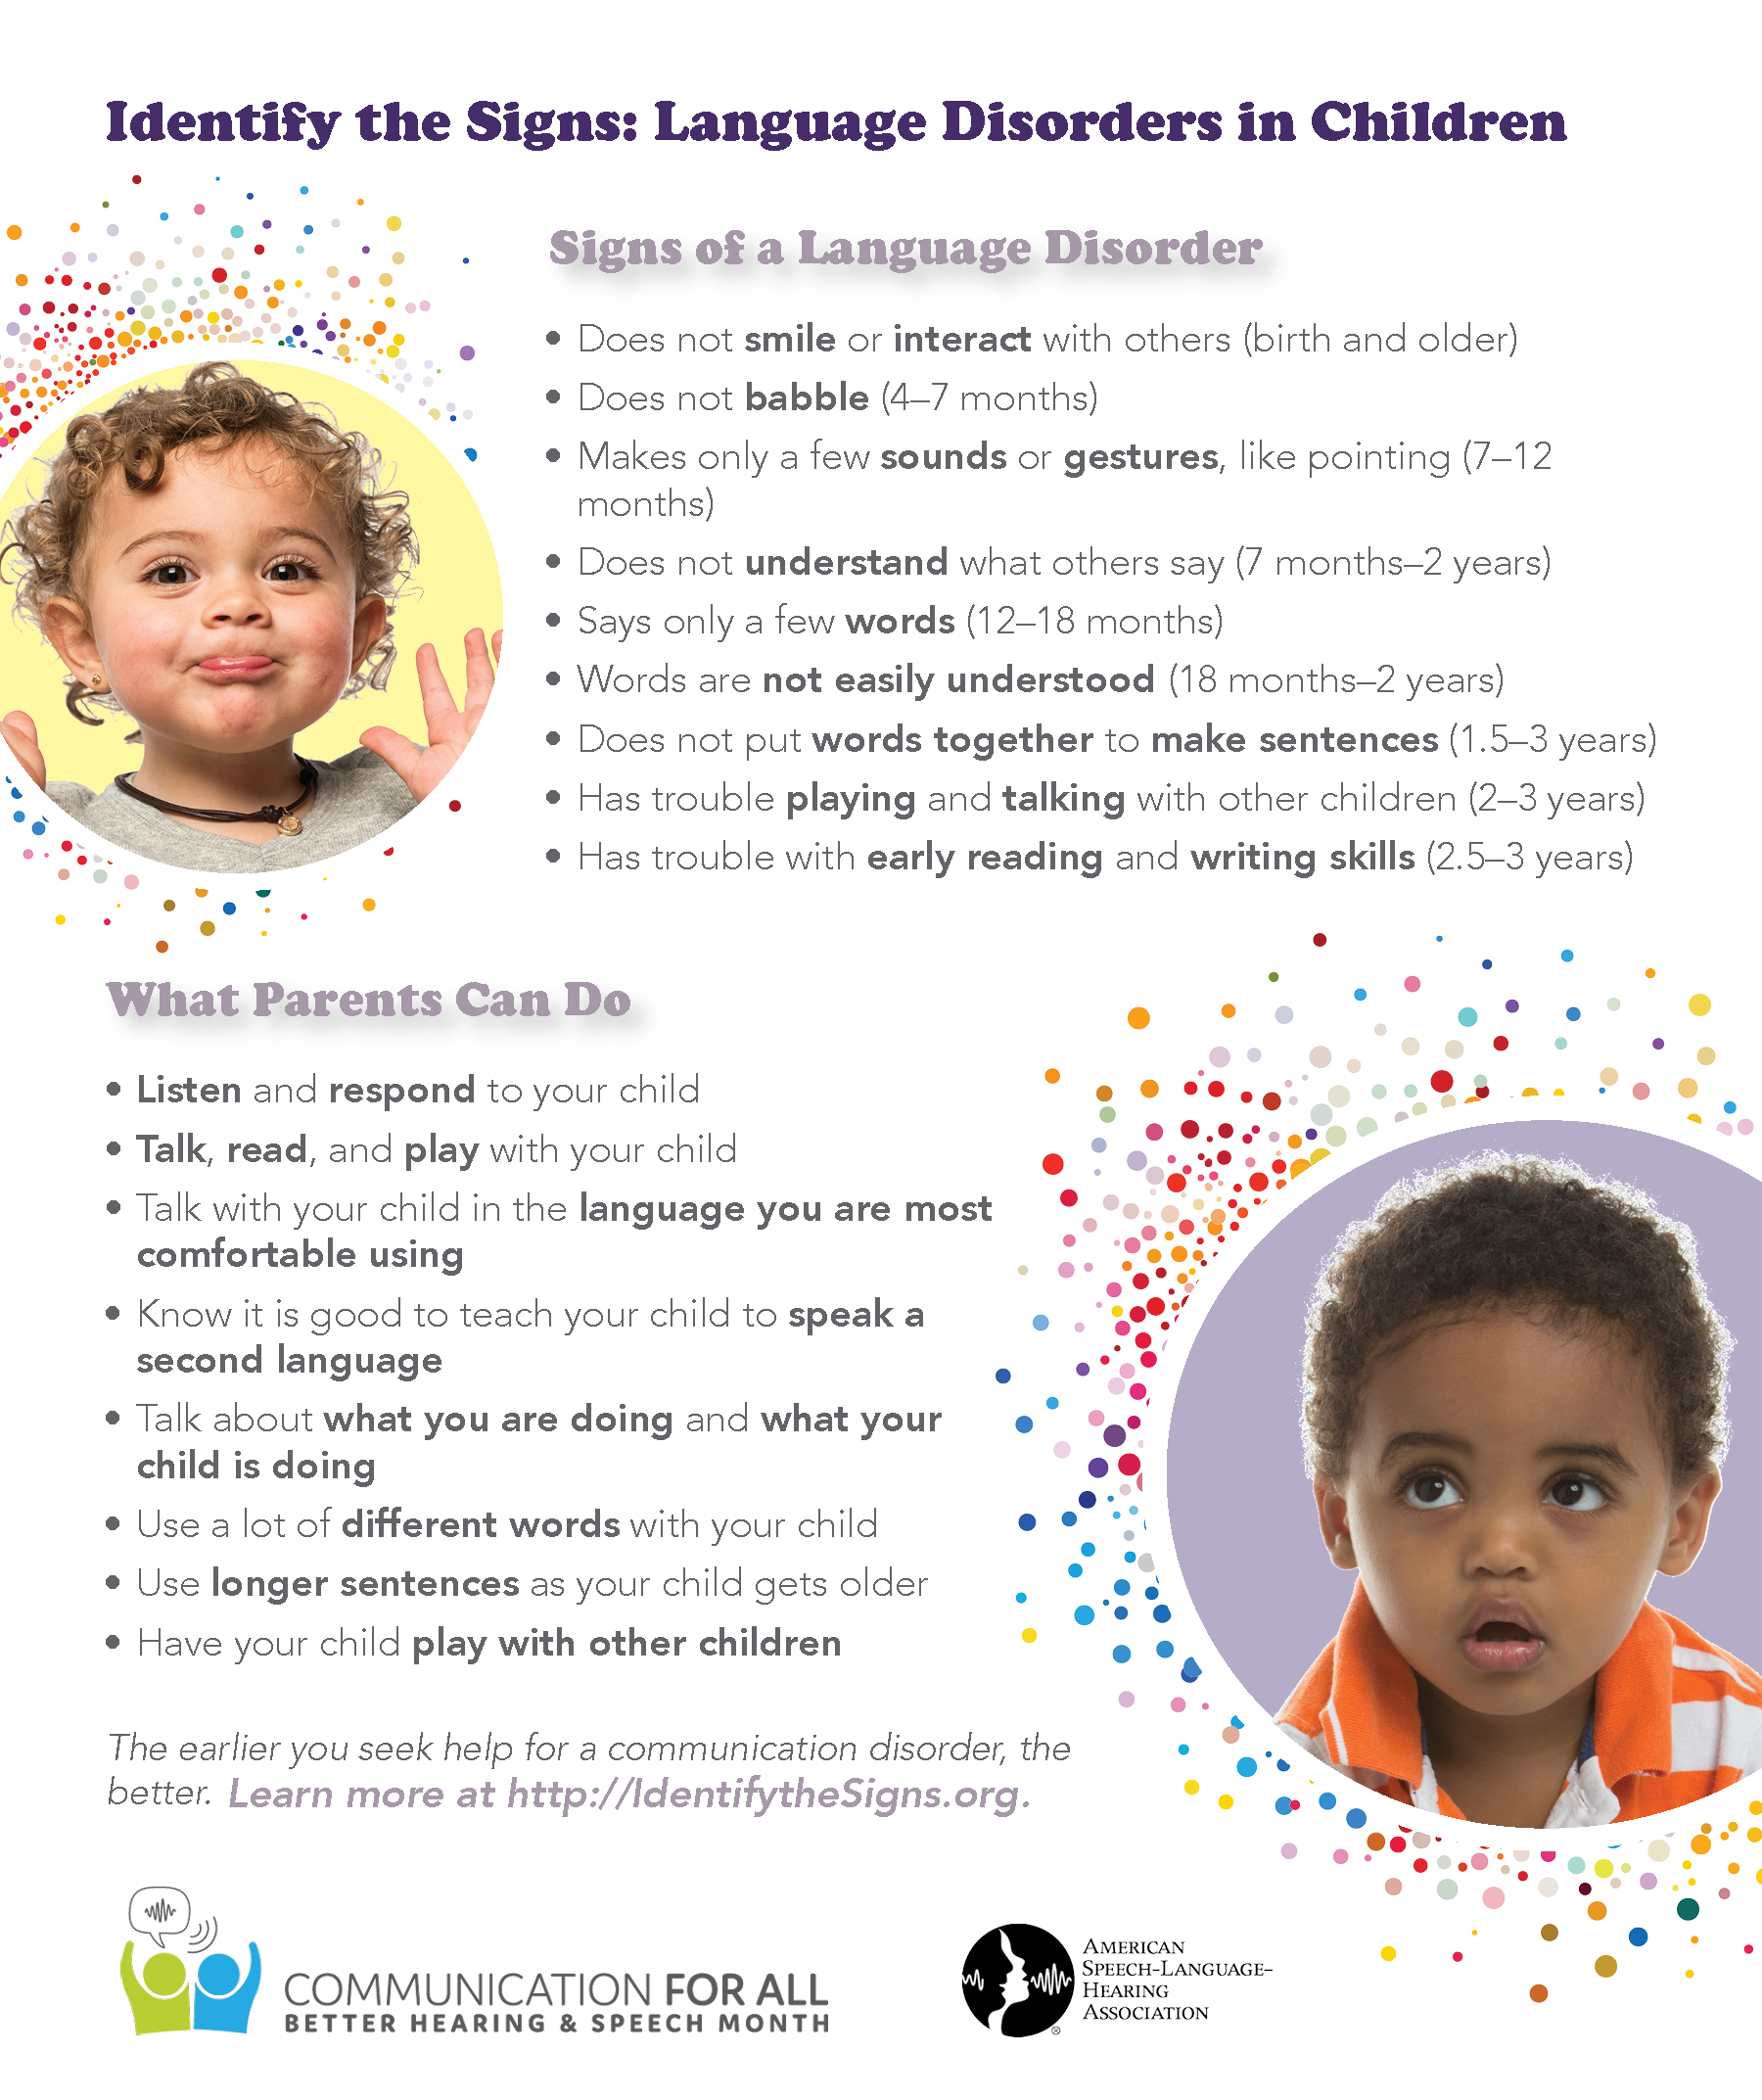 parents unaware of early signs of communication disorders